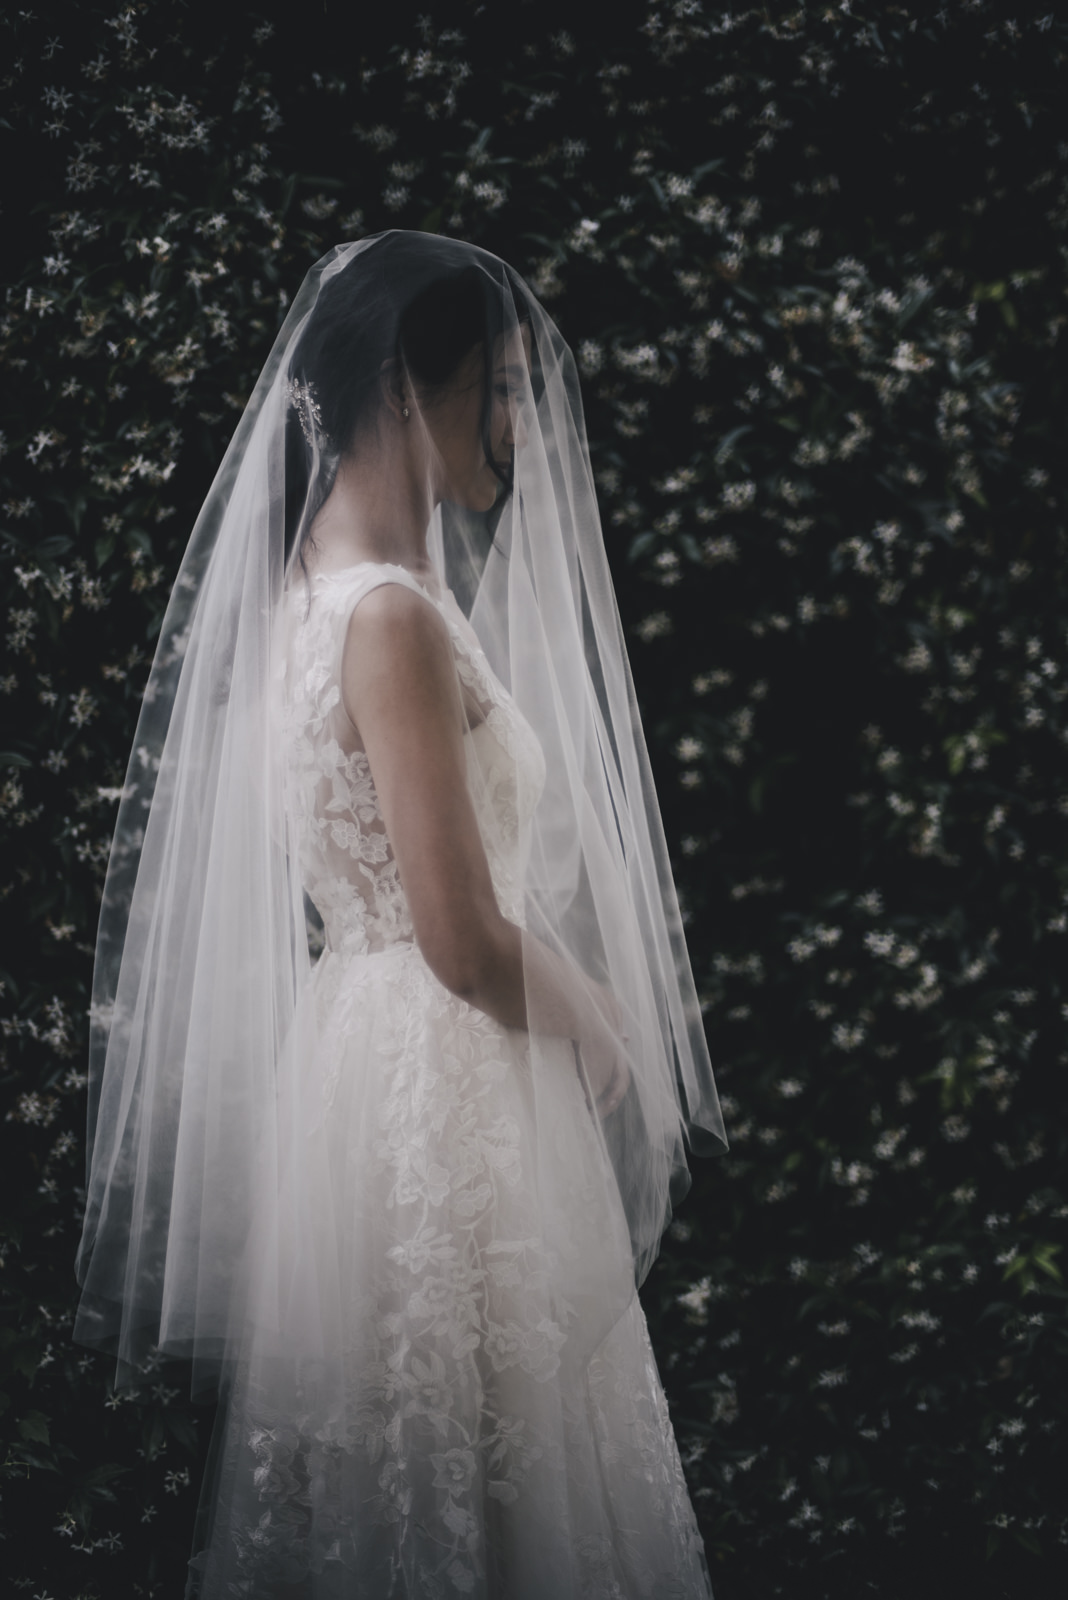 the bride with the wedding veil